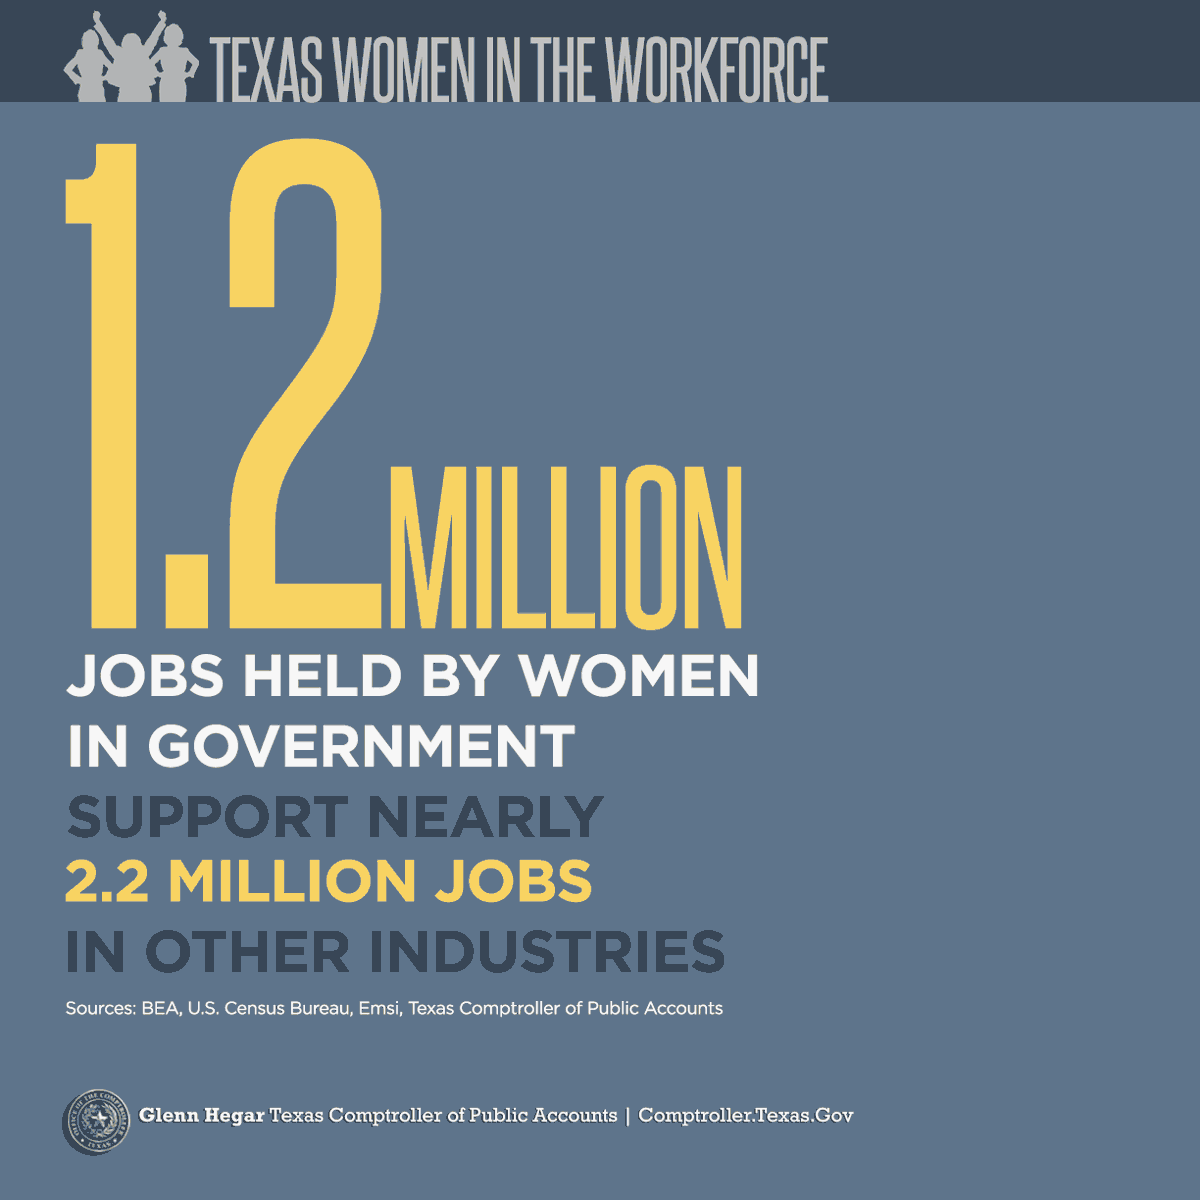 Texas Women in the Workforce -  1.2 million jobs held by women in government support nearly 2.2 million jobs in other industries. Sources: BEA, U.S. Census Bureau, Emsi, Texas Comptroller of Public Accounts